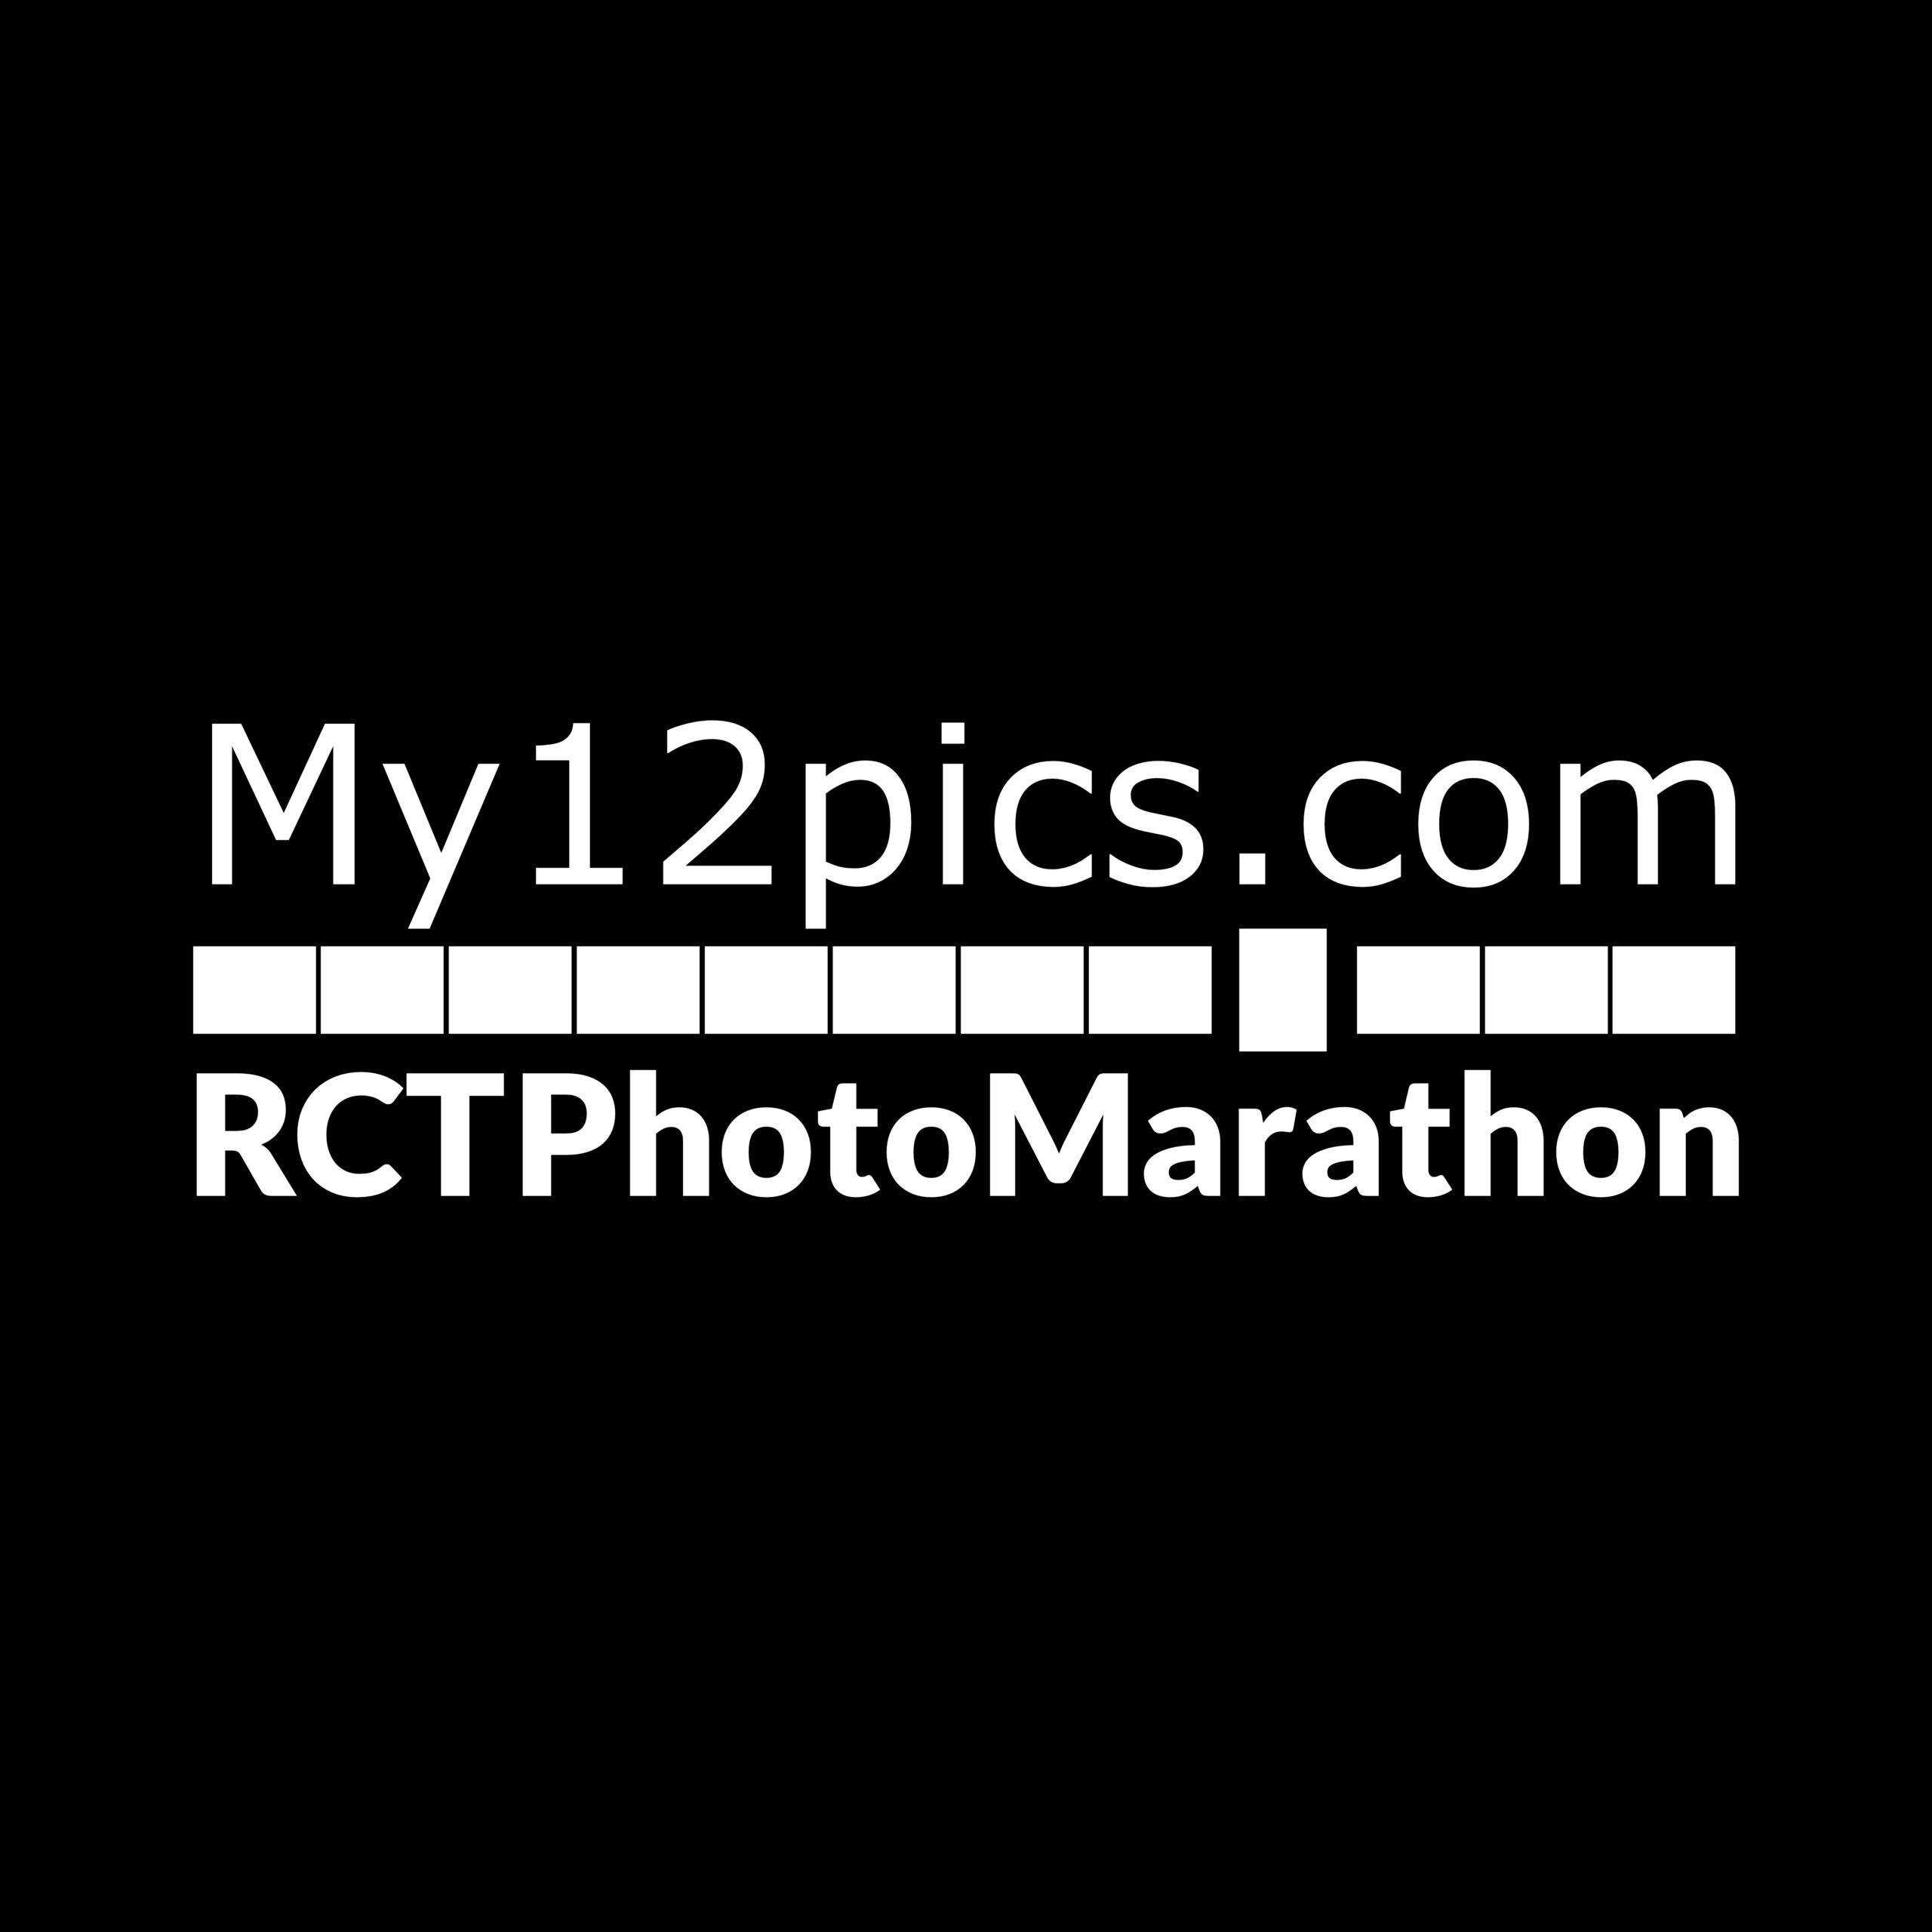 Todd Campbell from Pontypridd  Wins RCTPhotoMarathon 2021 with his 12 pictures